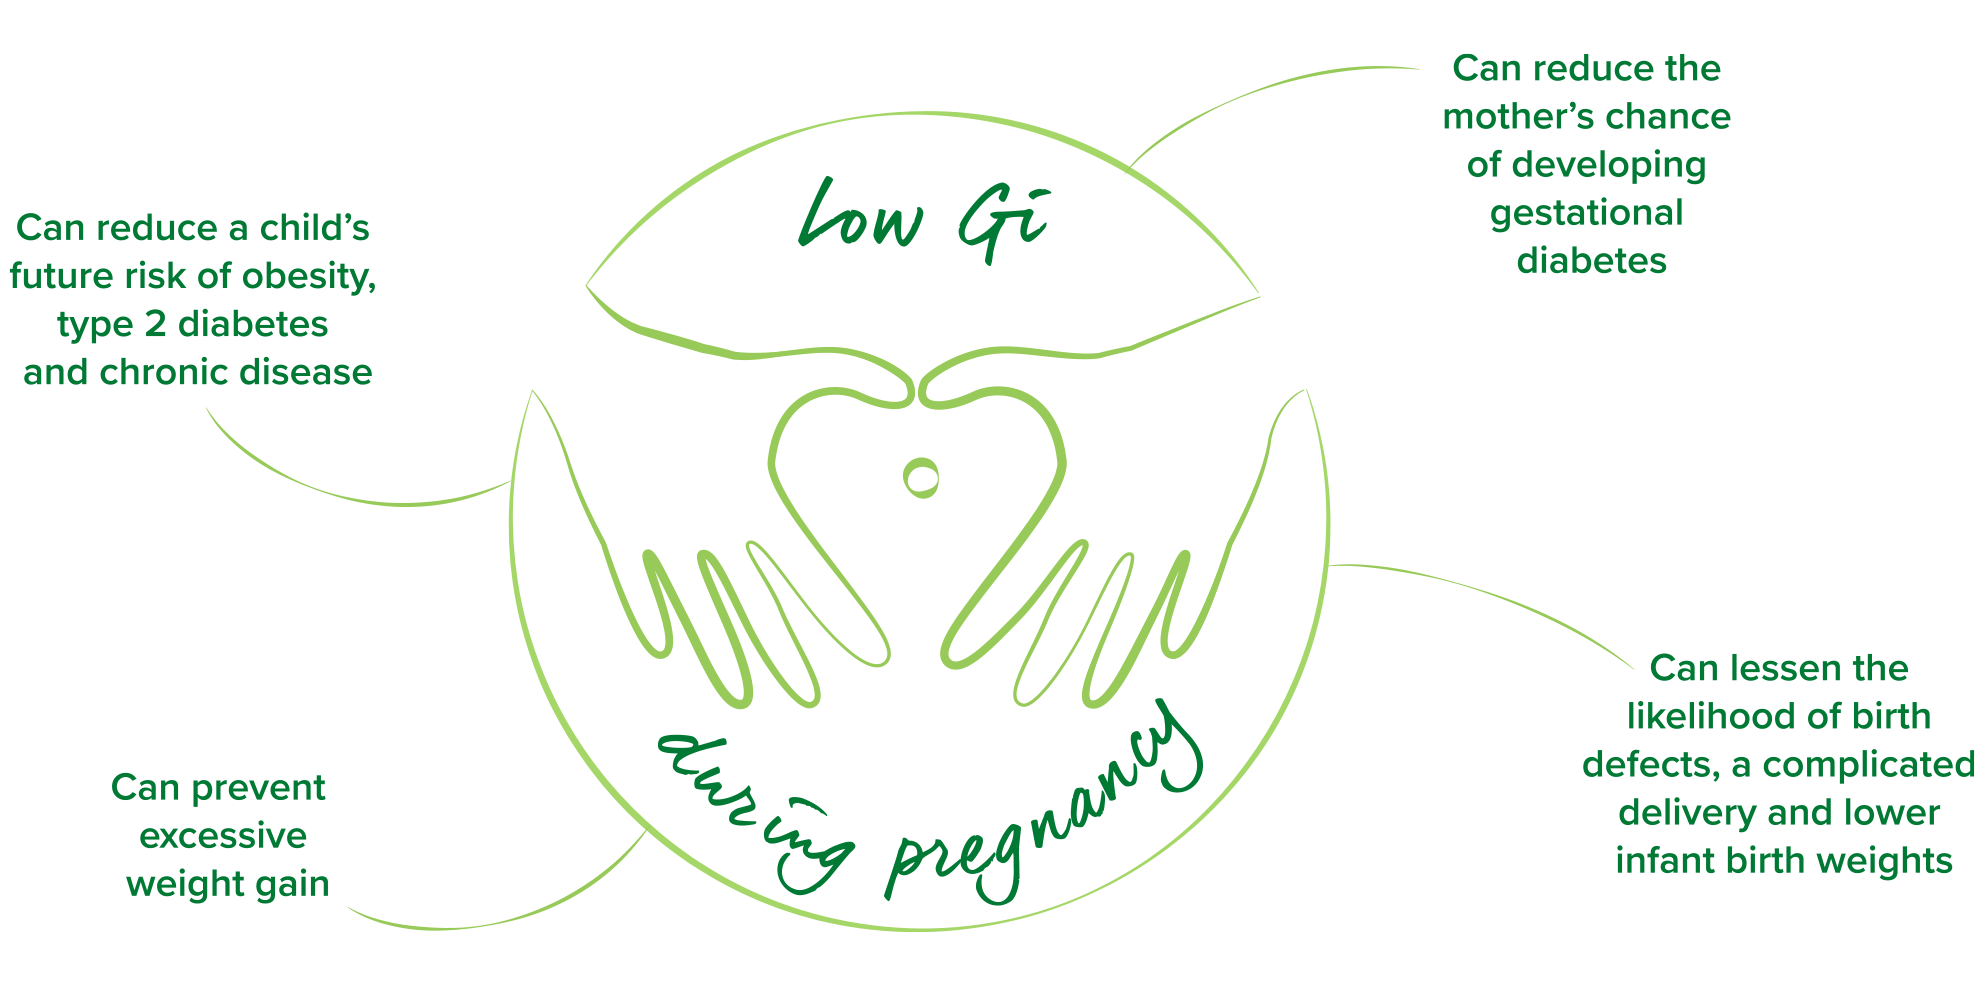 Benefits of low Gi during Pregnancy